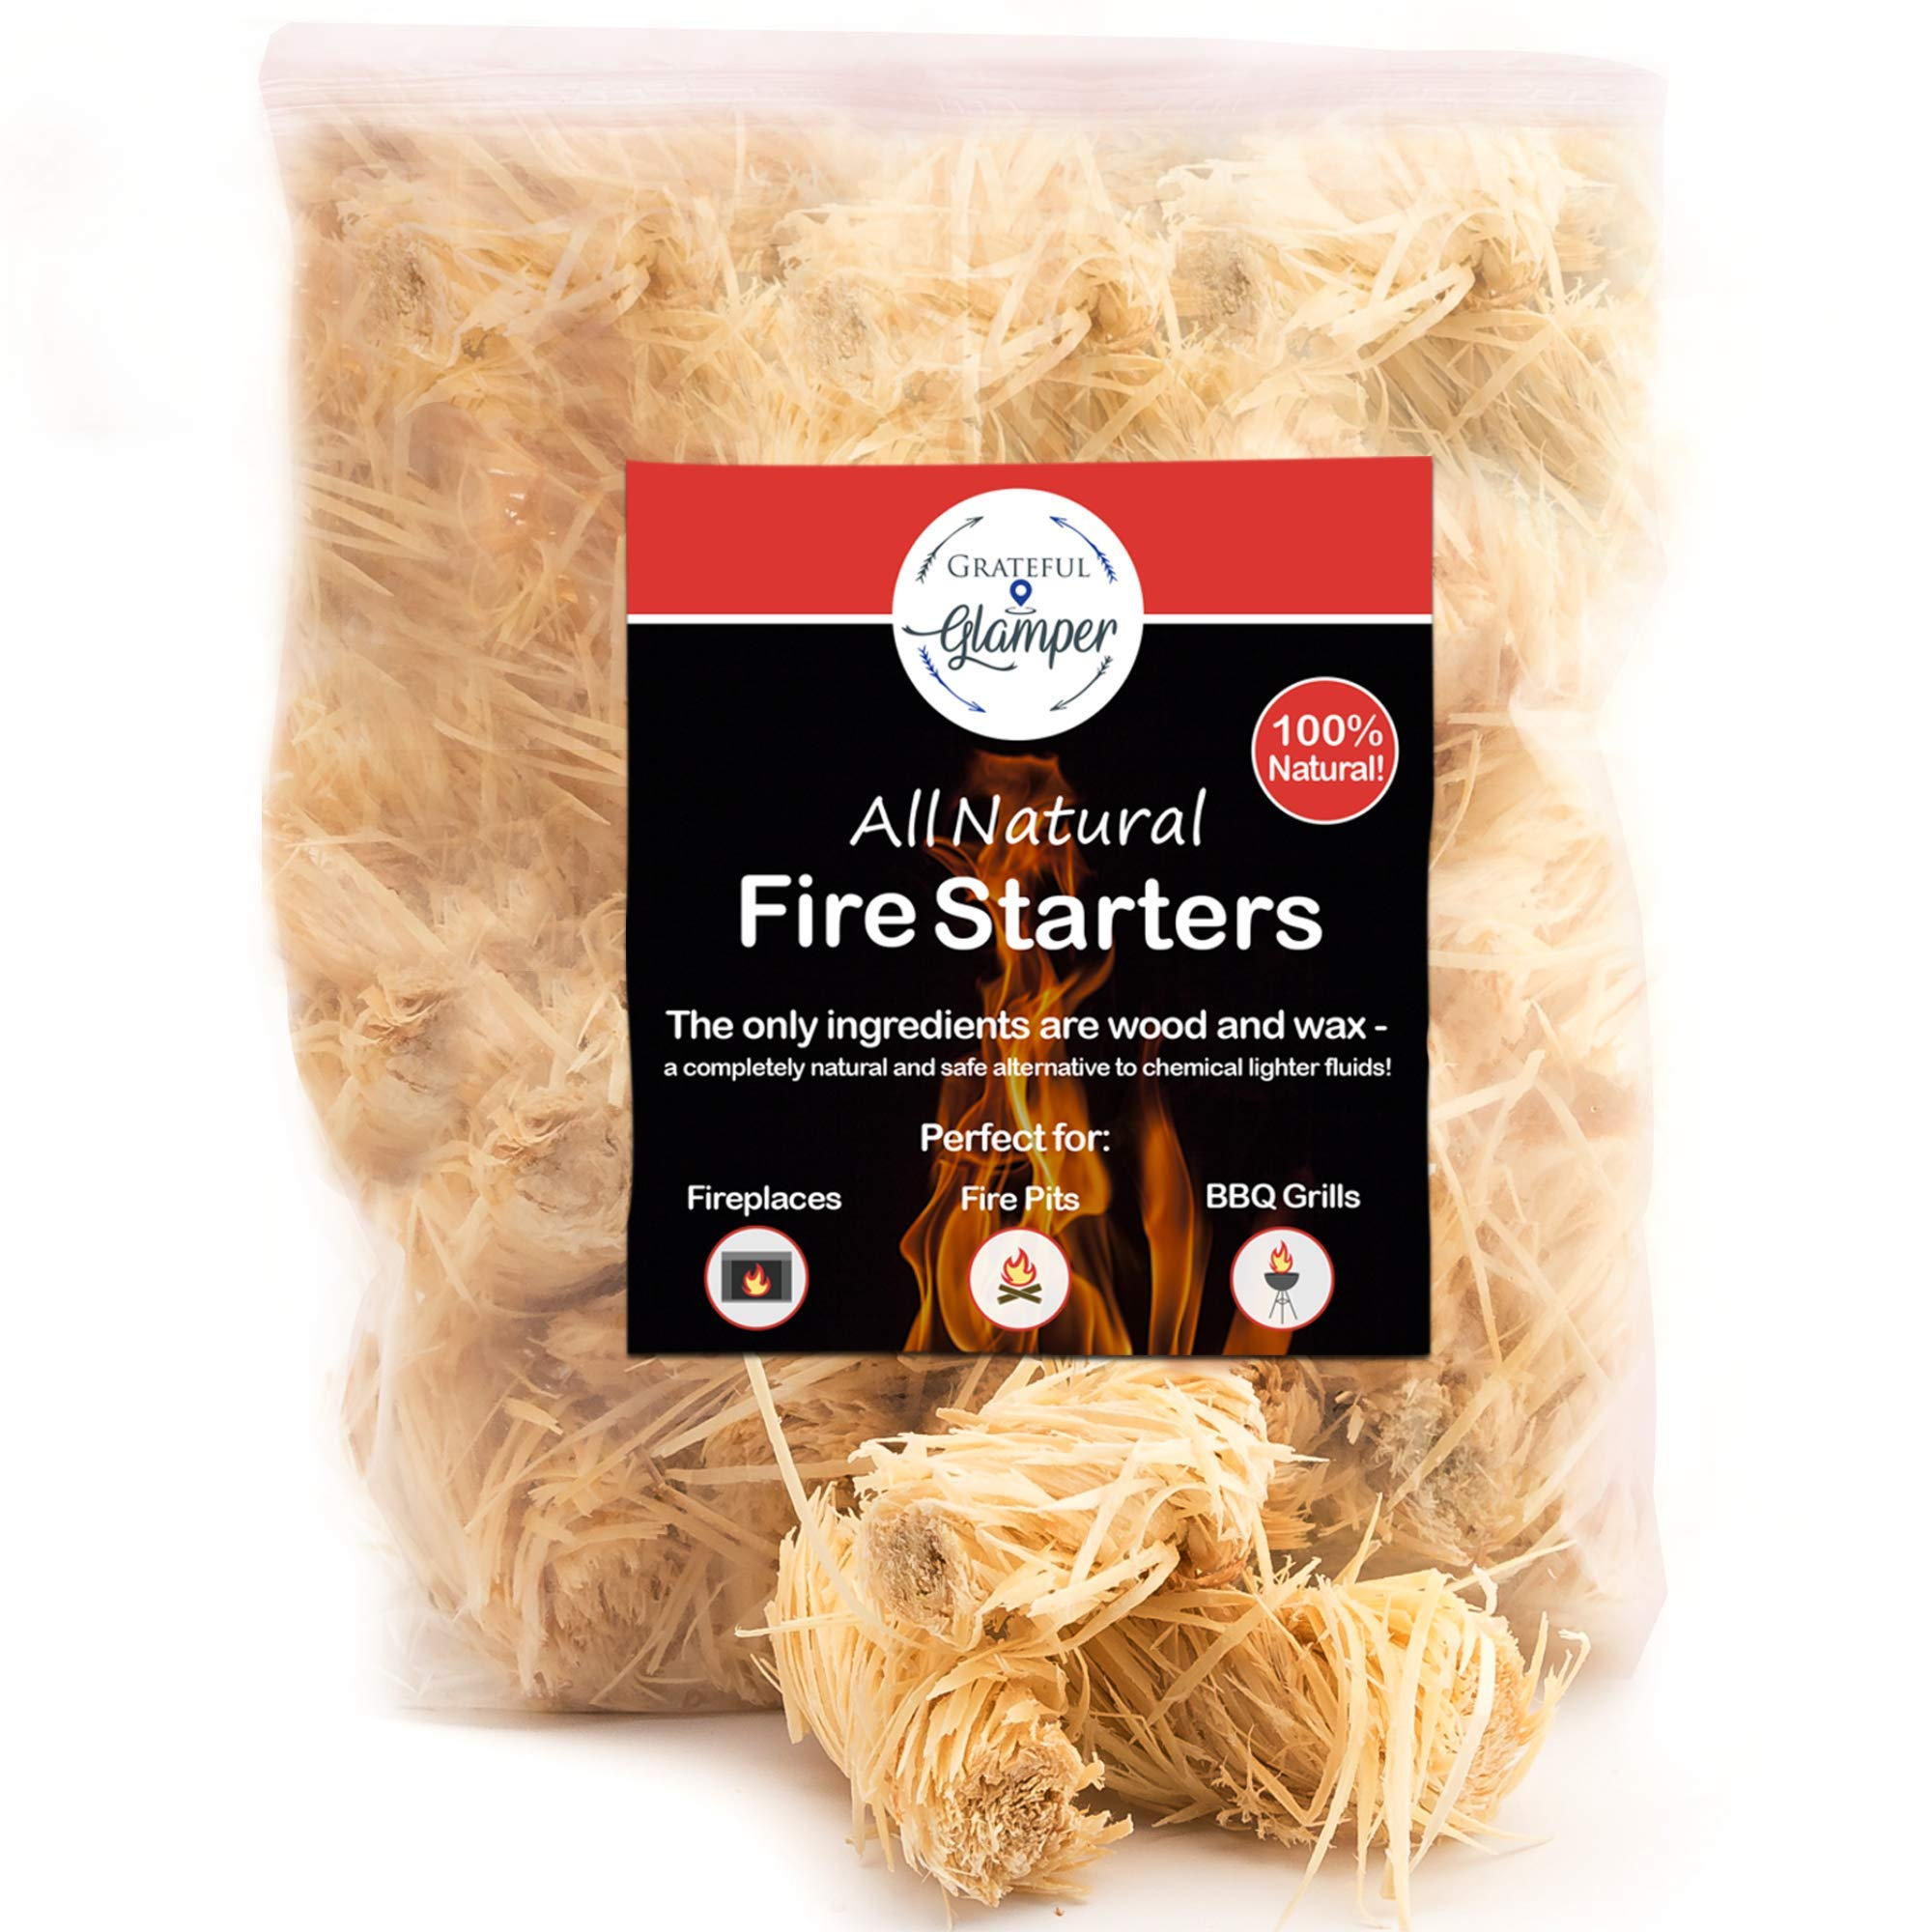 Fire Starter Tumbleweed 36 Nuggets Get Your Charcoal Fire Going Indoors/Outdoors Ideal For Barbeque Grills (Kamado, Green Egg), Pit Smokers, Wood Stoves, Campfires, Fireplaces| Eco-Friendly by Grateful Glamper